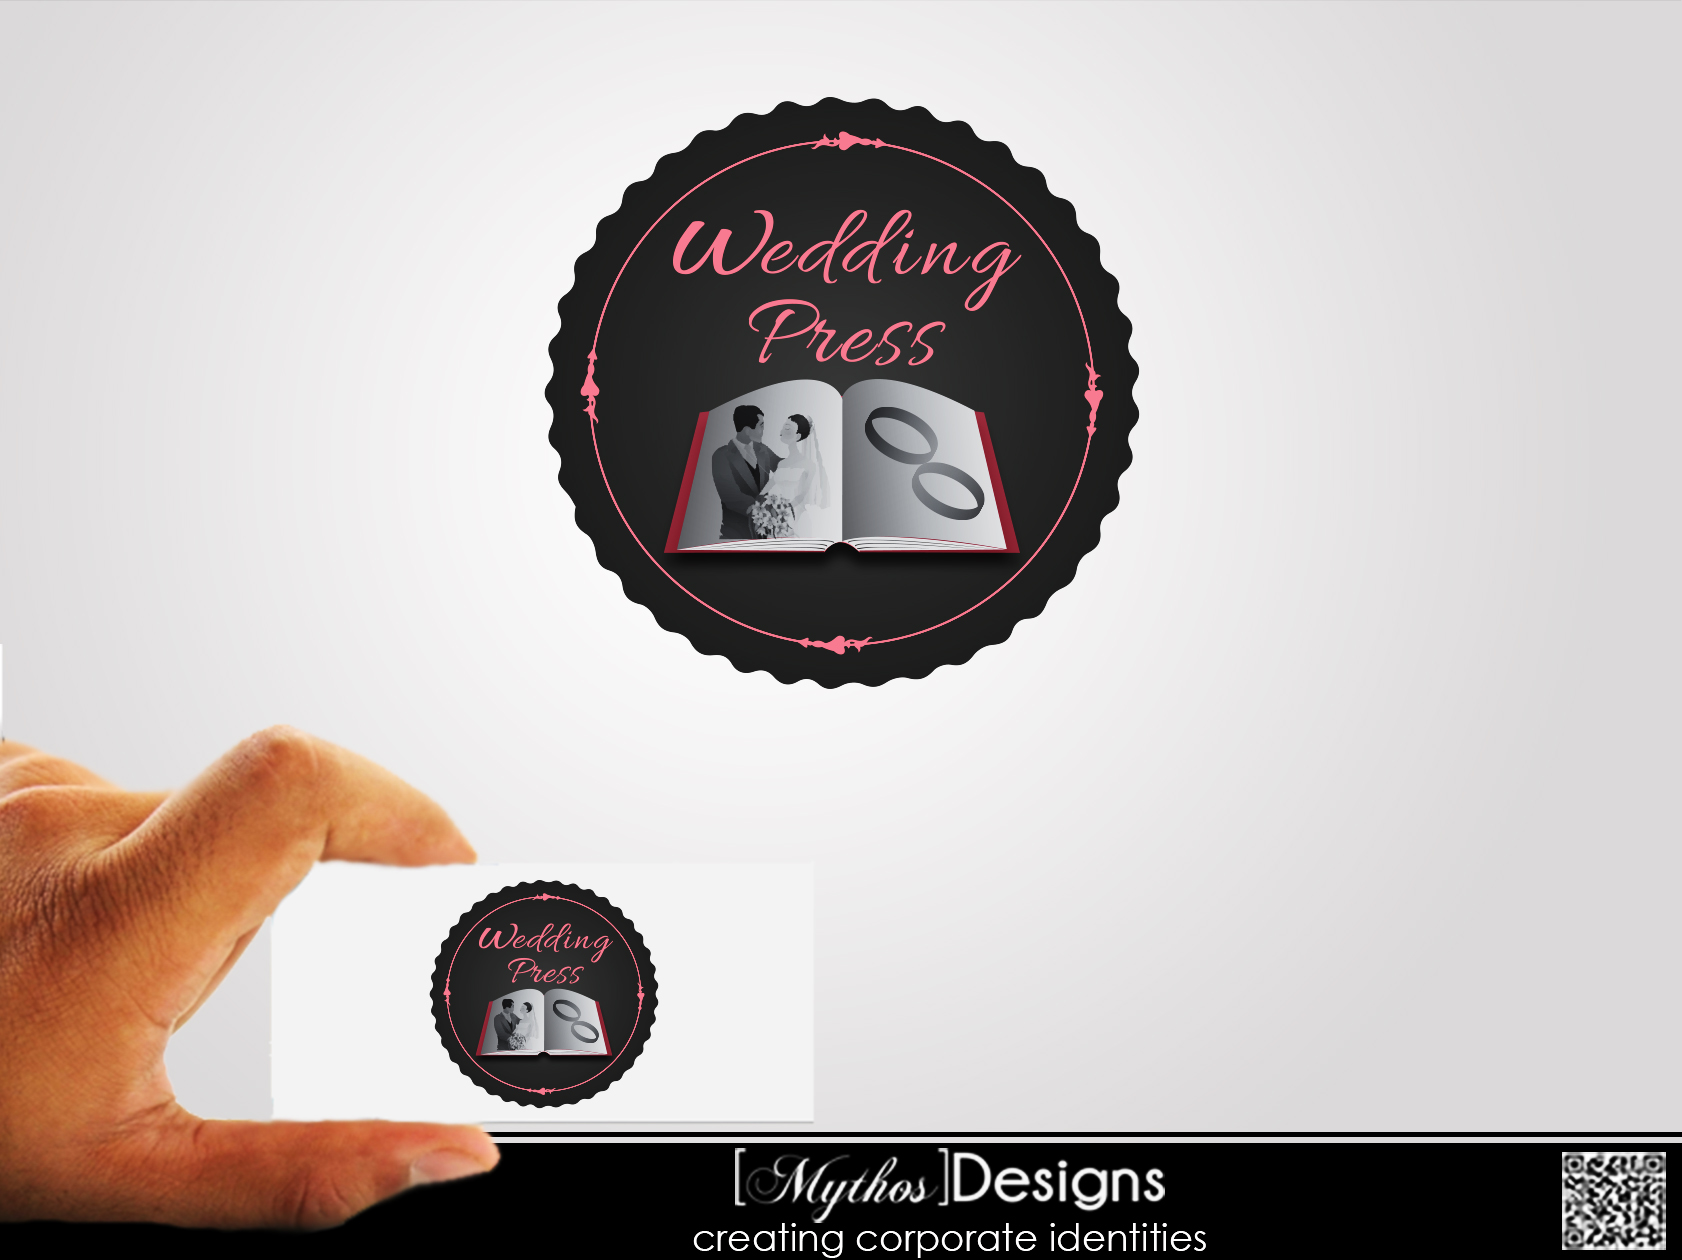 Logo Design by Mythos Designs - Entry No. 9 in the Logo Design Contest Wedding Writes Logo Design.